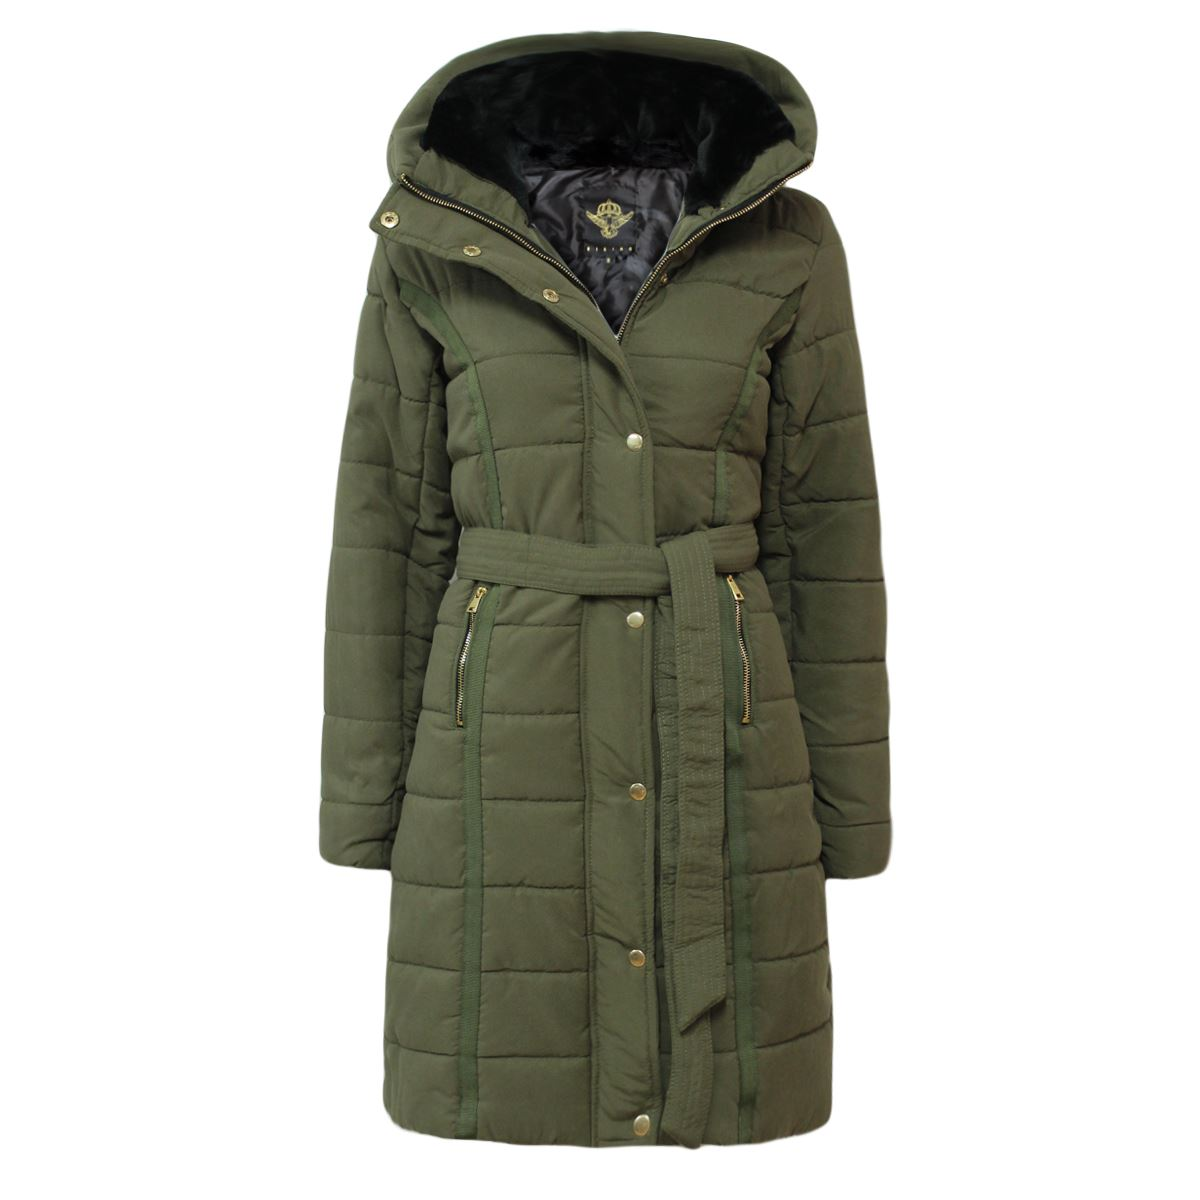 Womens long puffer jacket